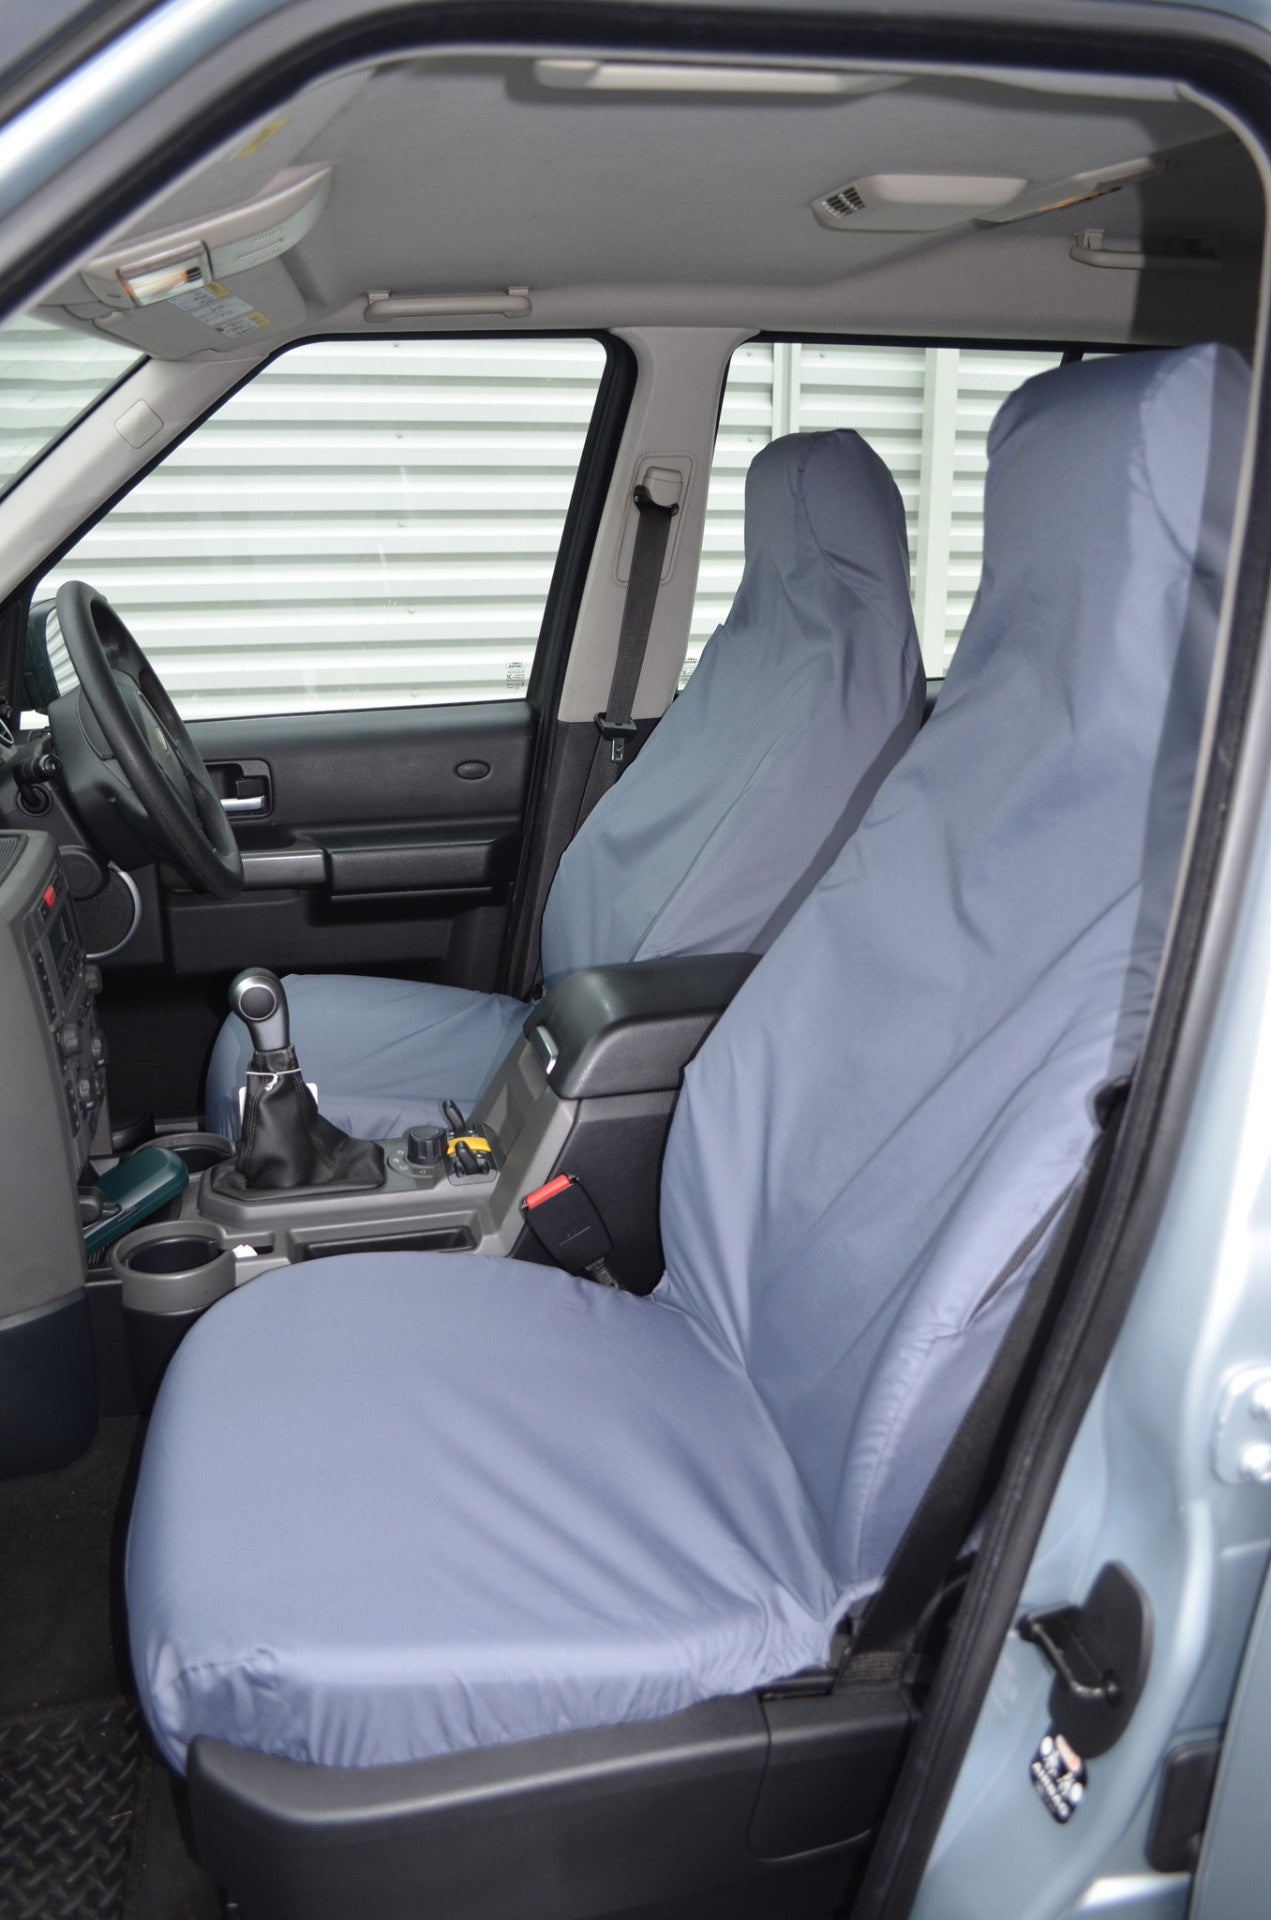 LAND ROVER DISCOVERY SEAT COVERS SERIES 3 /& 4 REAR SEATS GREY